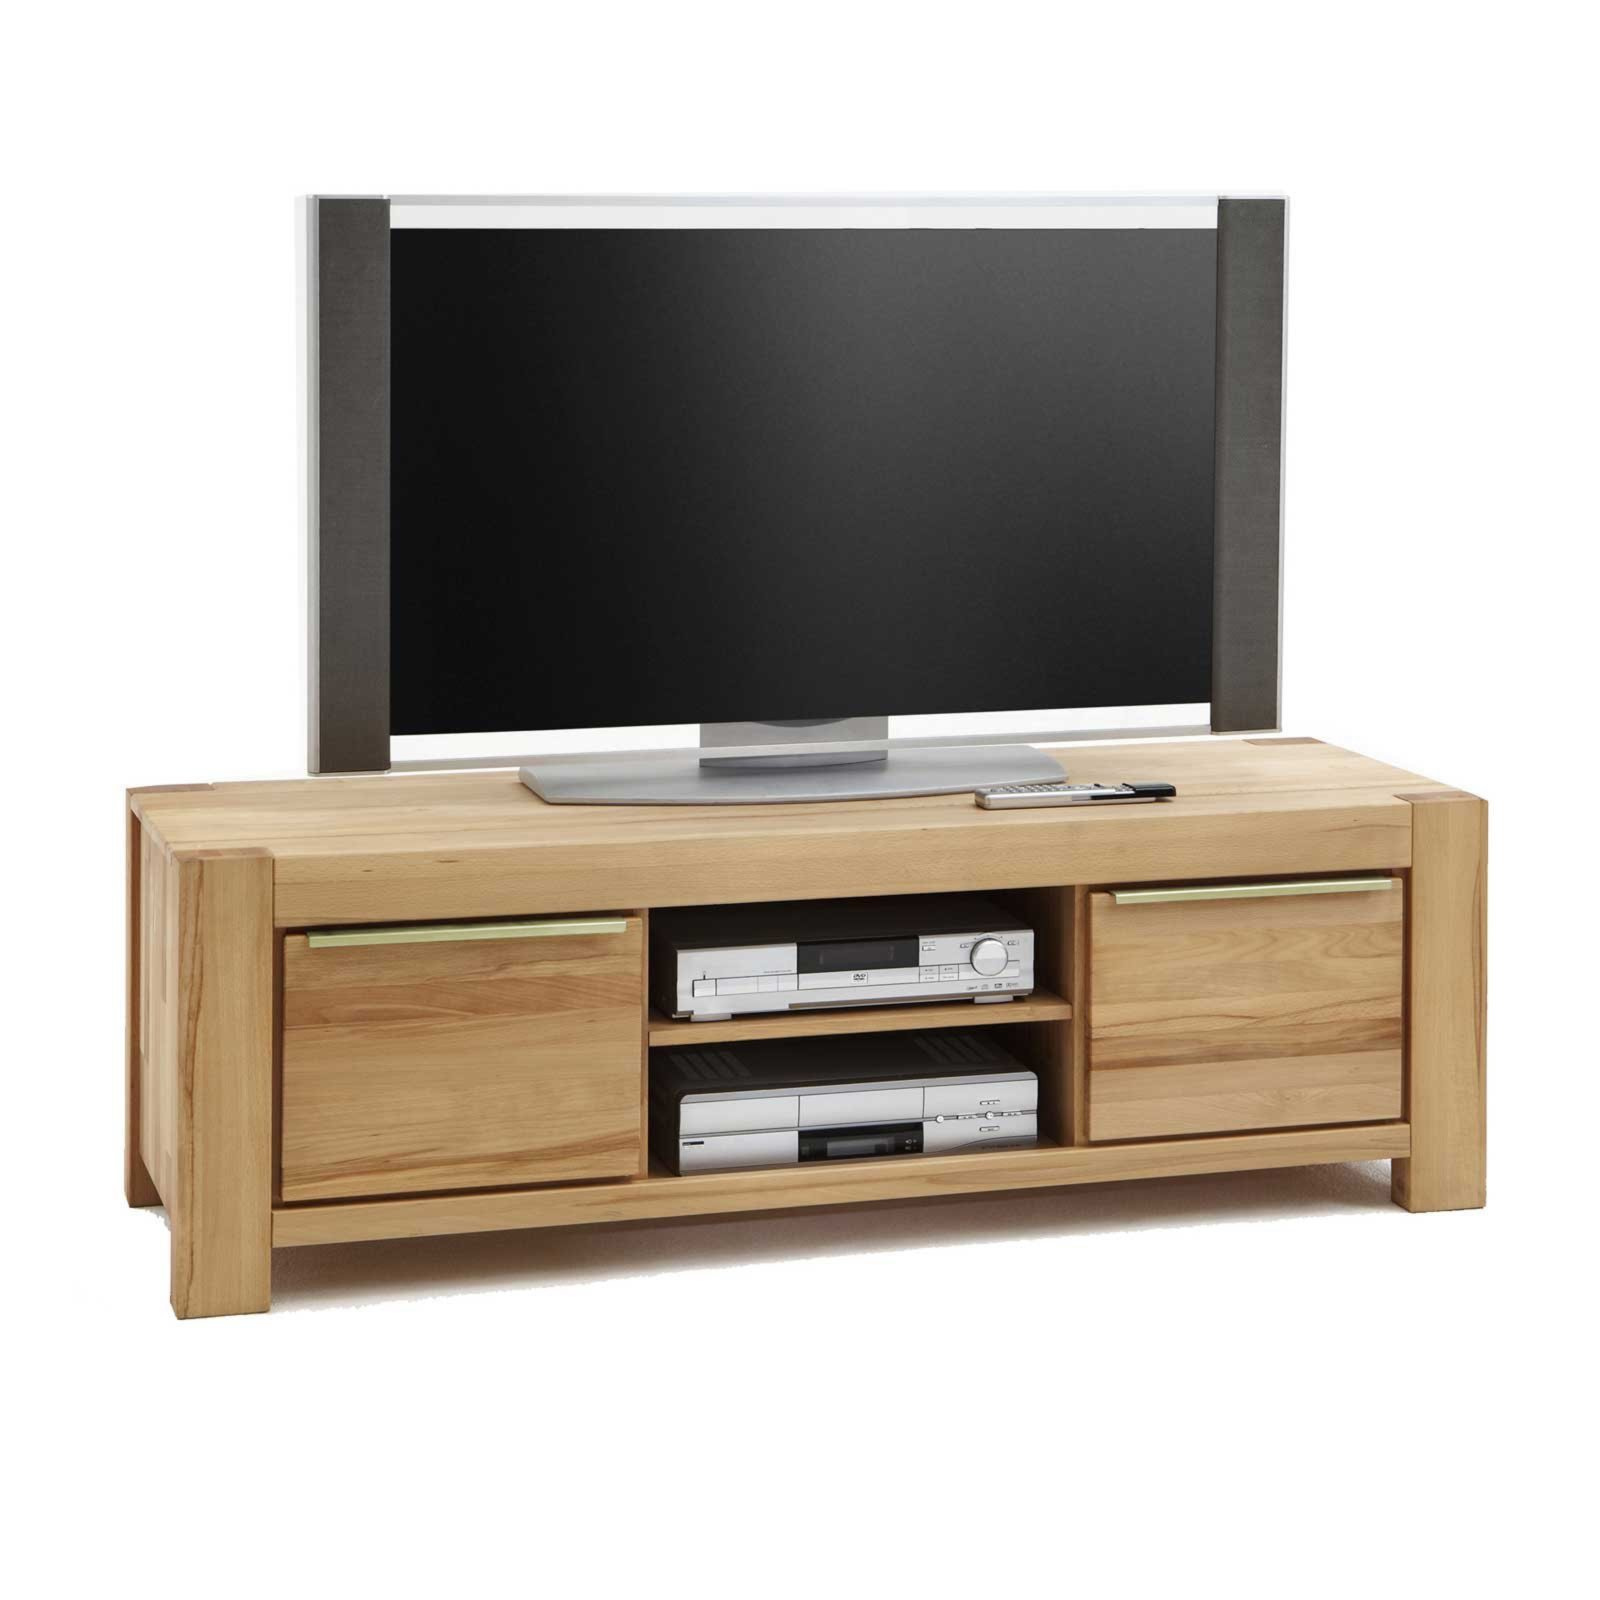 lowboard nena kernbuche massivholz 155 cm tv lowboards tv b nke tv hifi m bel m bel. Black Bedroom Furniture Sets. Home Design Ideas